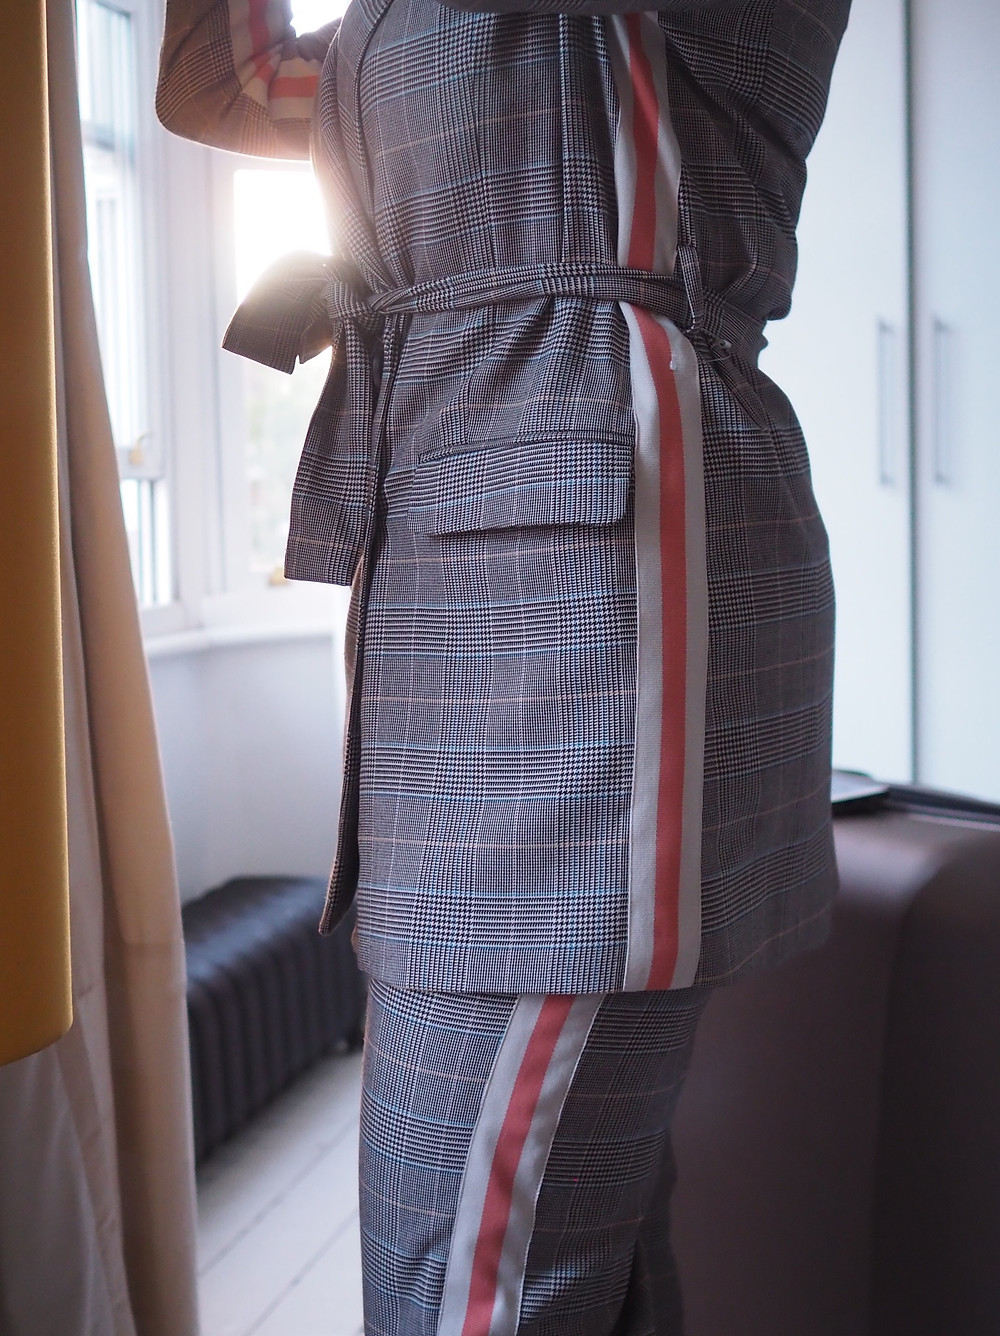 A close up picture of my side profile, wearing an M&S checked suit with side stripe detail, and a co-ordinating belt.